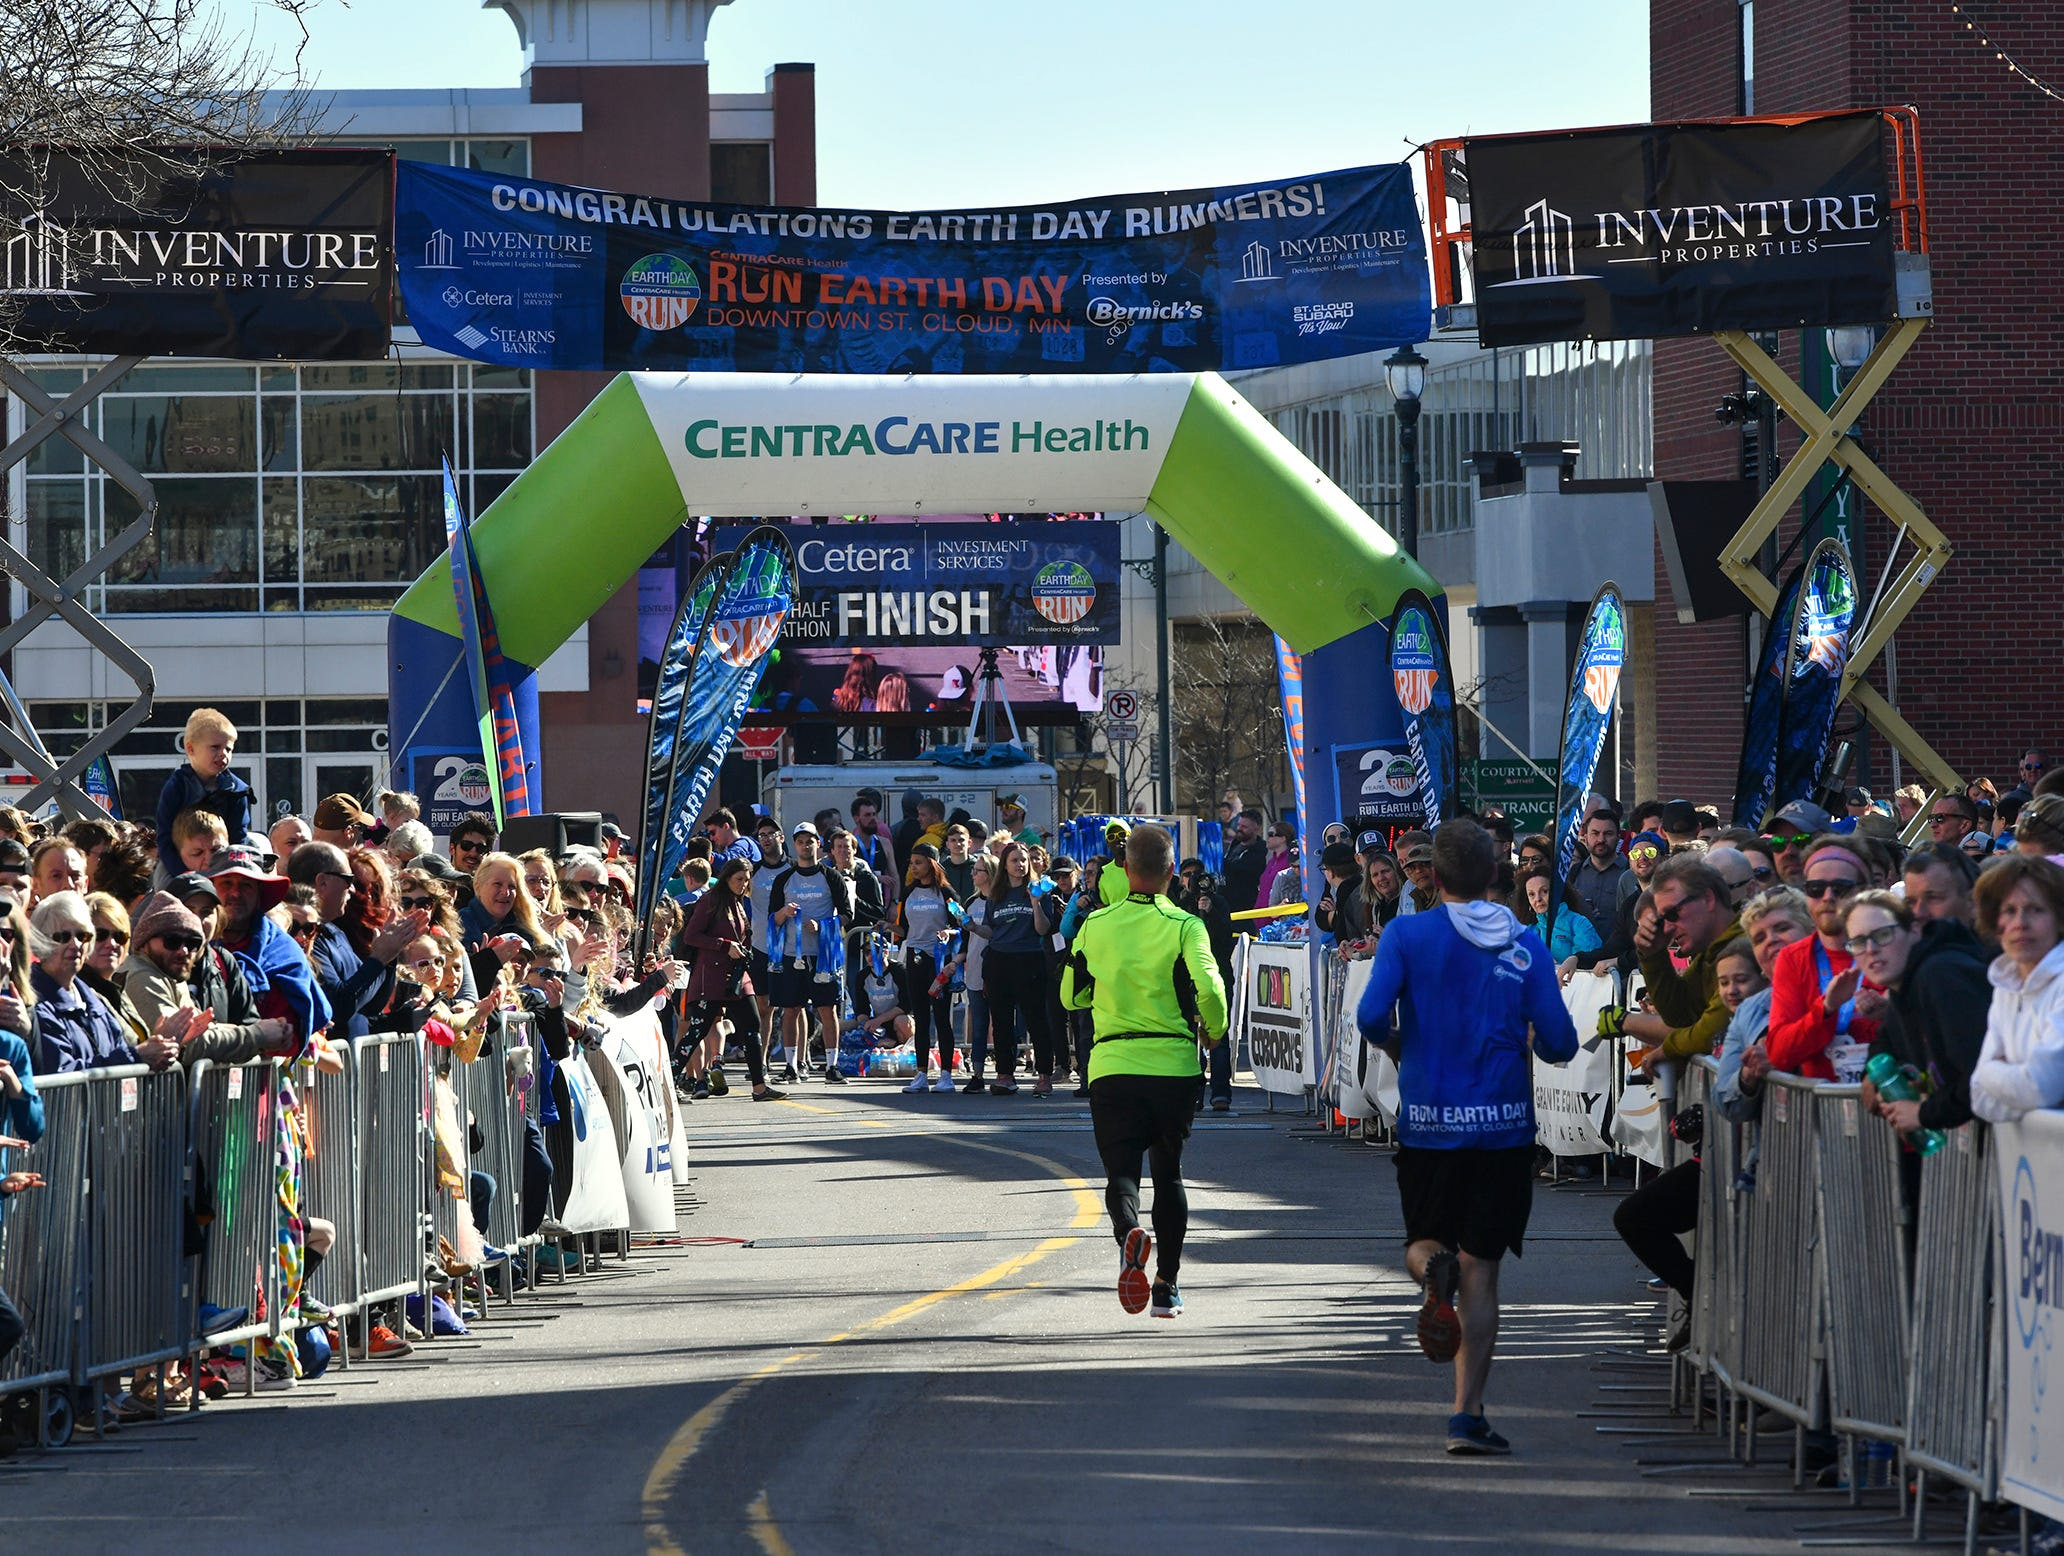 Runners approach the finish line near the River's Edge Convention Center on St. Germain Street during the Cetera Half Marathon as part of CentraCare Health Earth Day Run activities Saturday, April 20, in downtown St. Cloud.